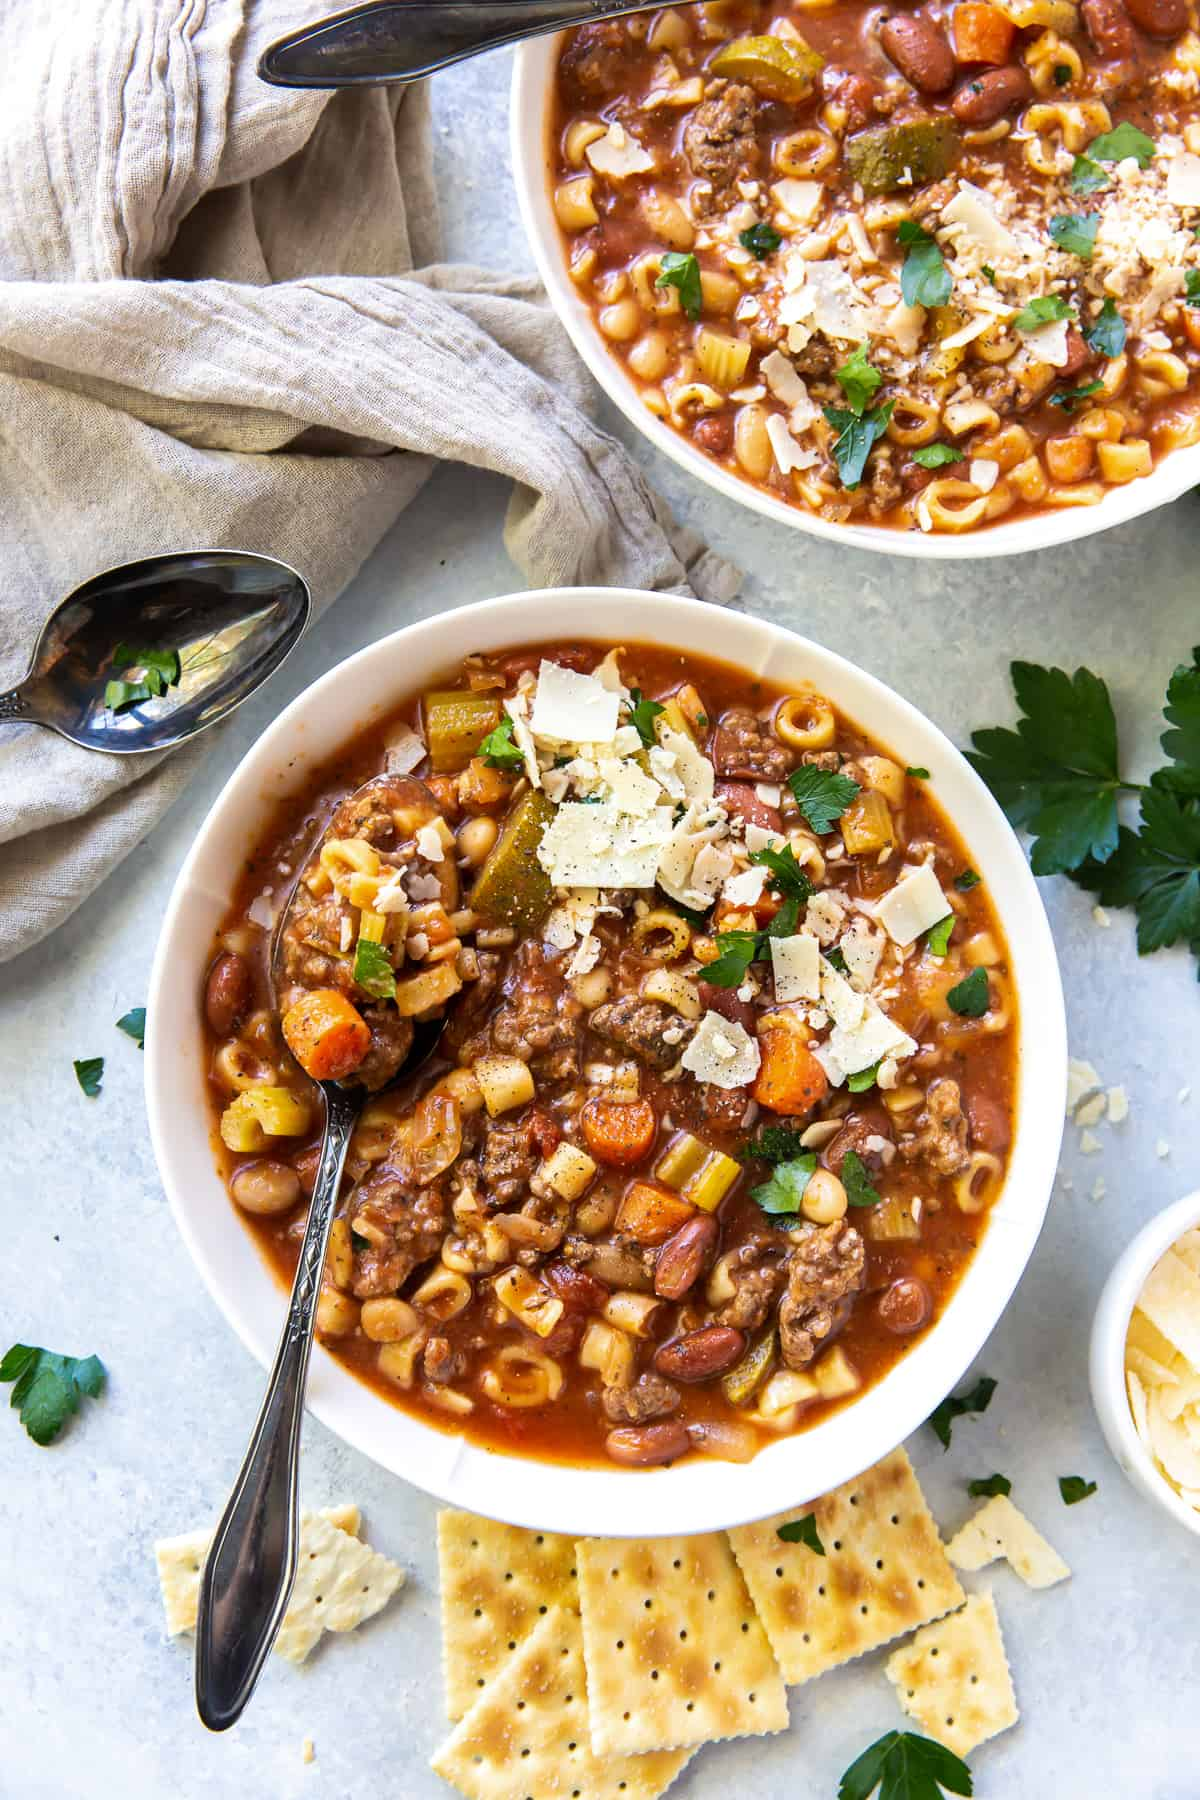 An over the top shot of two bowls of Hamburger Minestrone topped with Parmesan.